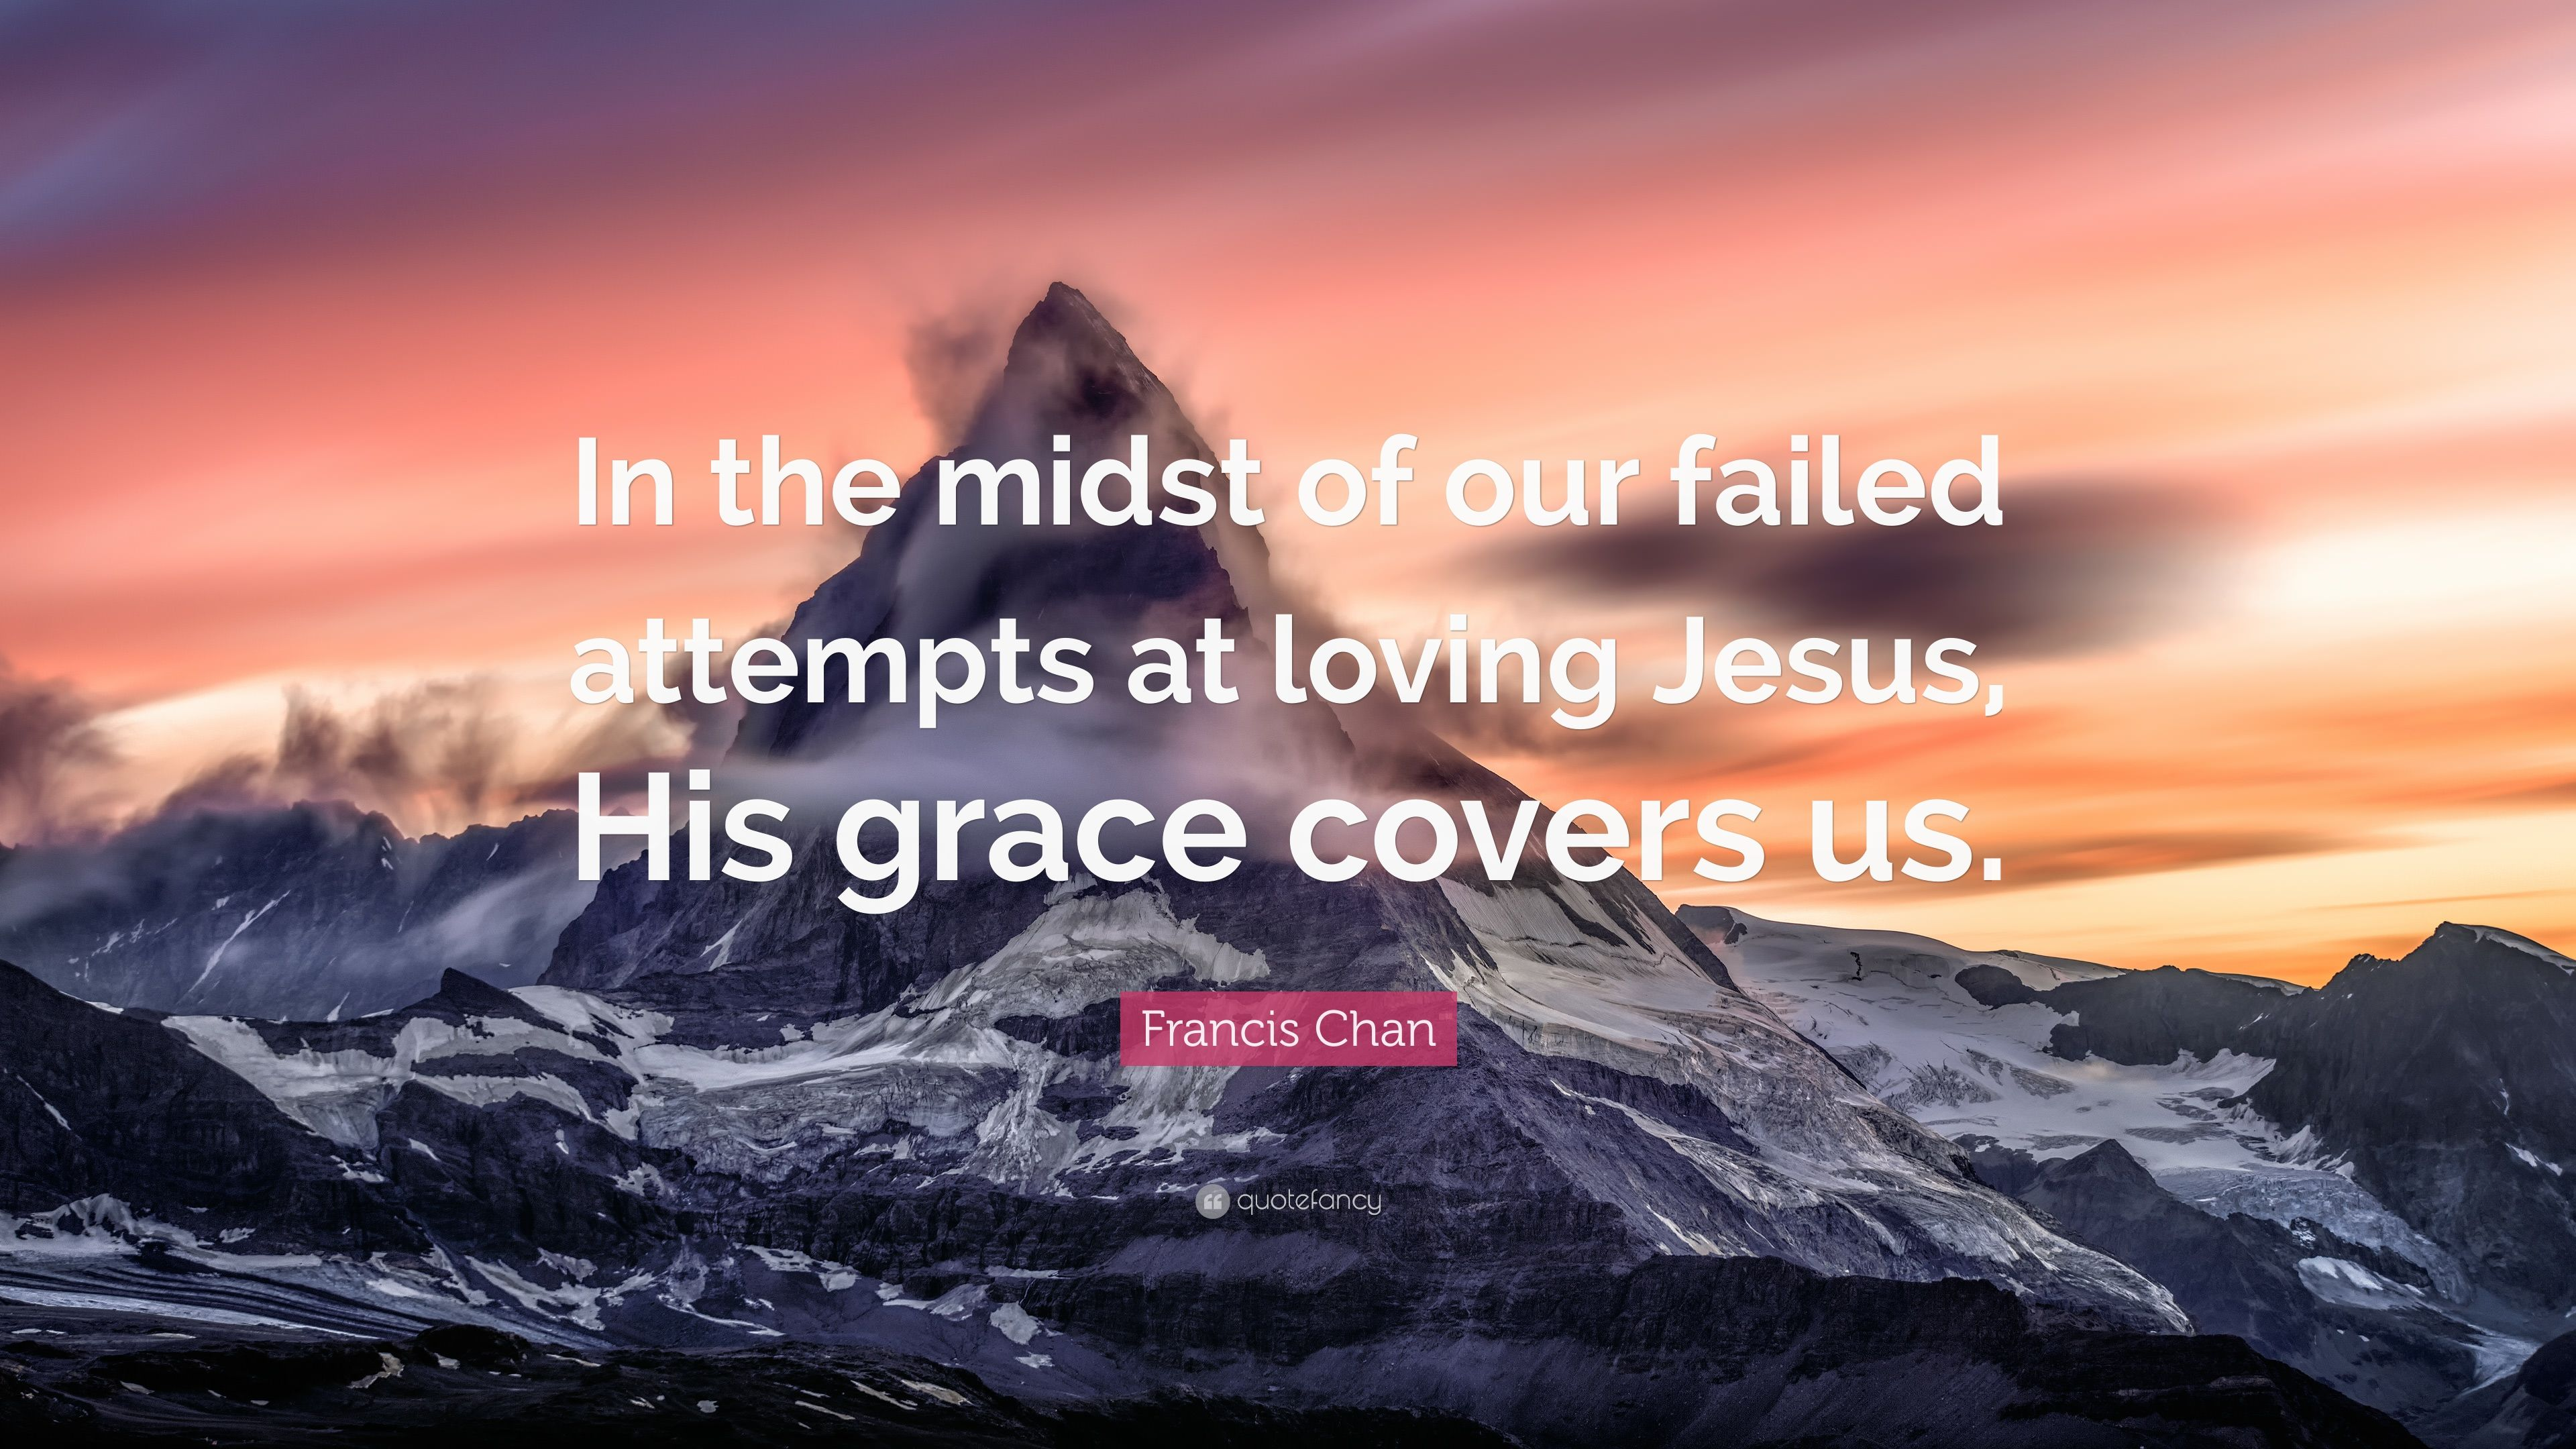 francis chan quote u201cin the midst of our failed attempts at loving